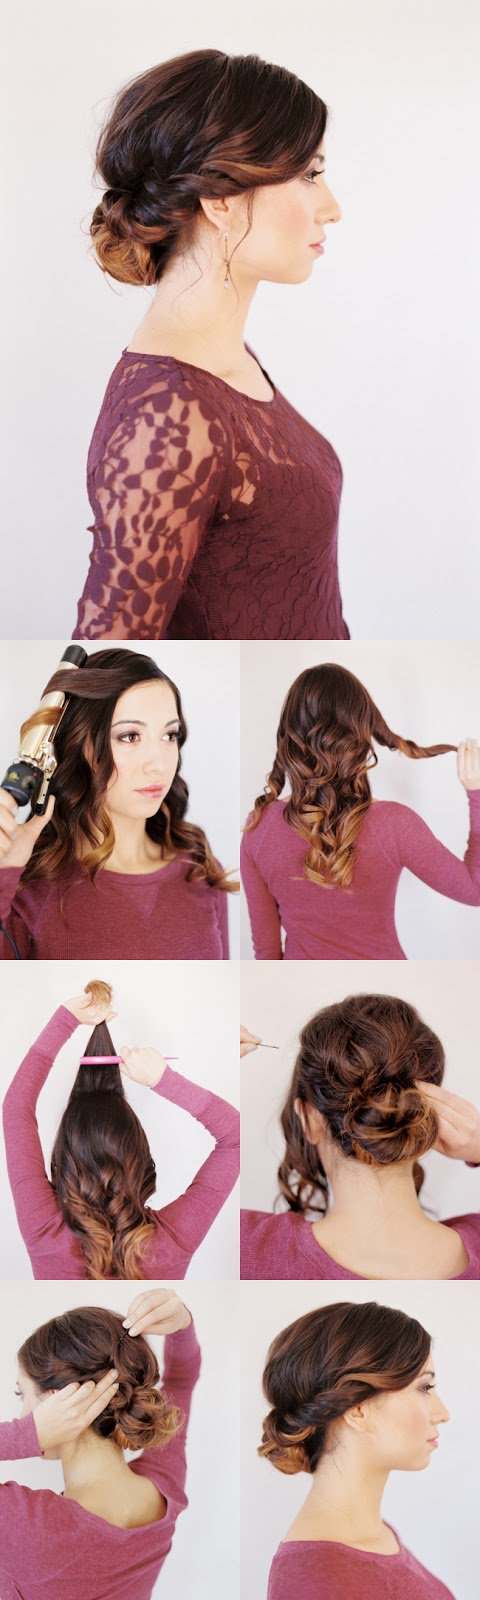 Twisted updo for women